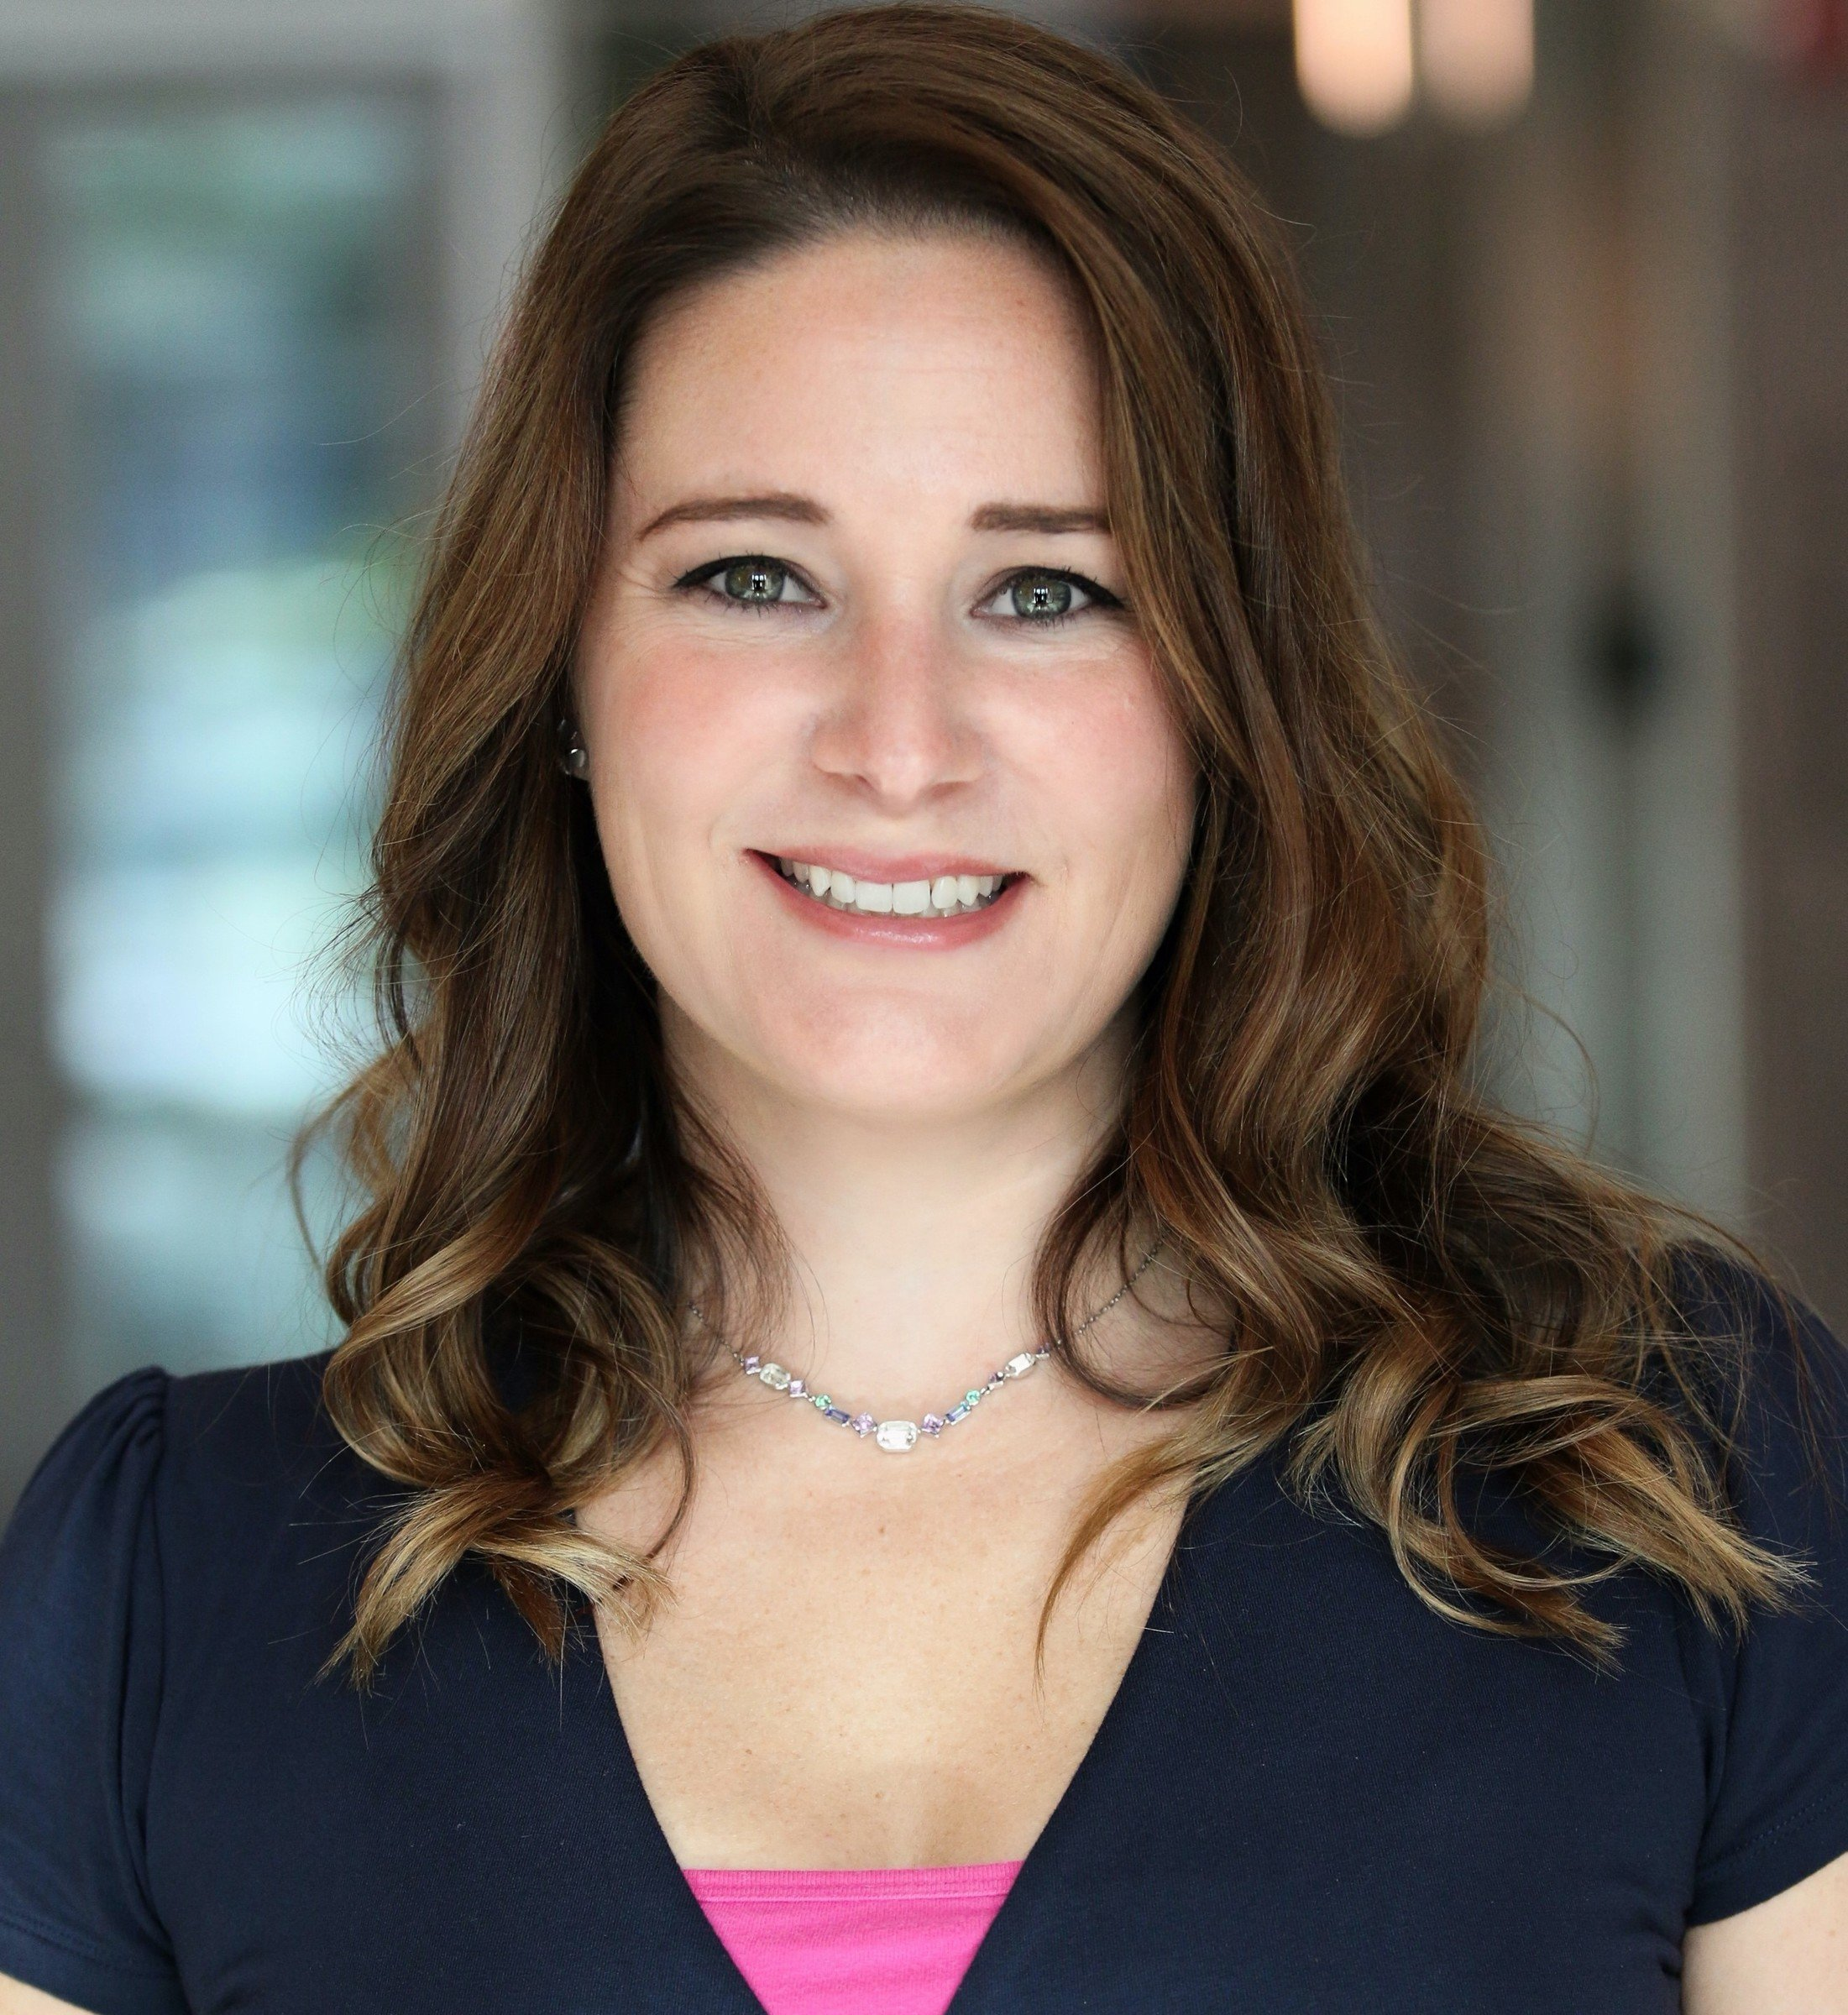 Image of FMP COO, Jessica Milloy